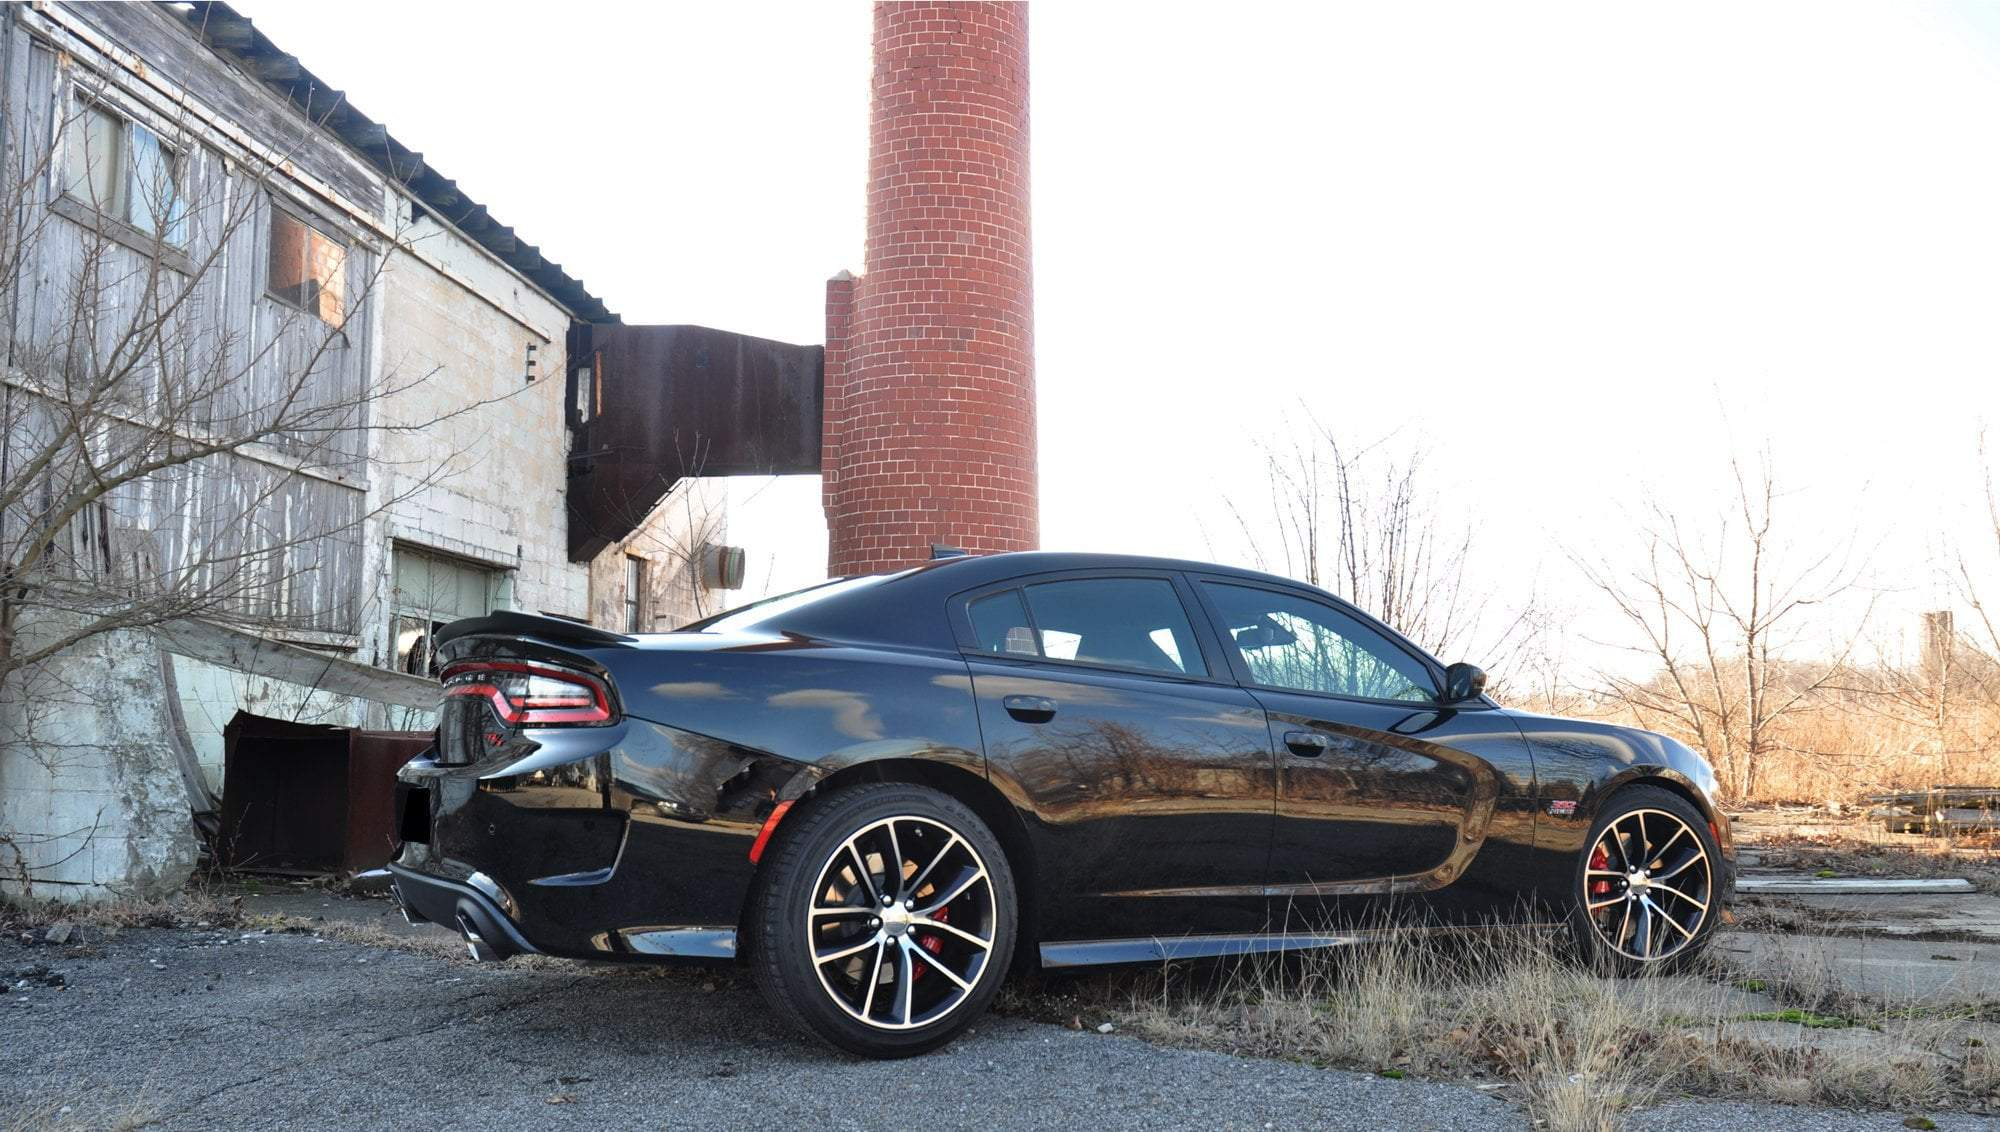 2015 2019 Dodge Charger 5 7l 6 2l 6 4l V8 2 75 Axle Back Exhaust System With 4 5 Tips 21019 Sport Sound Level